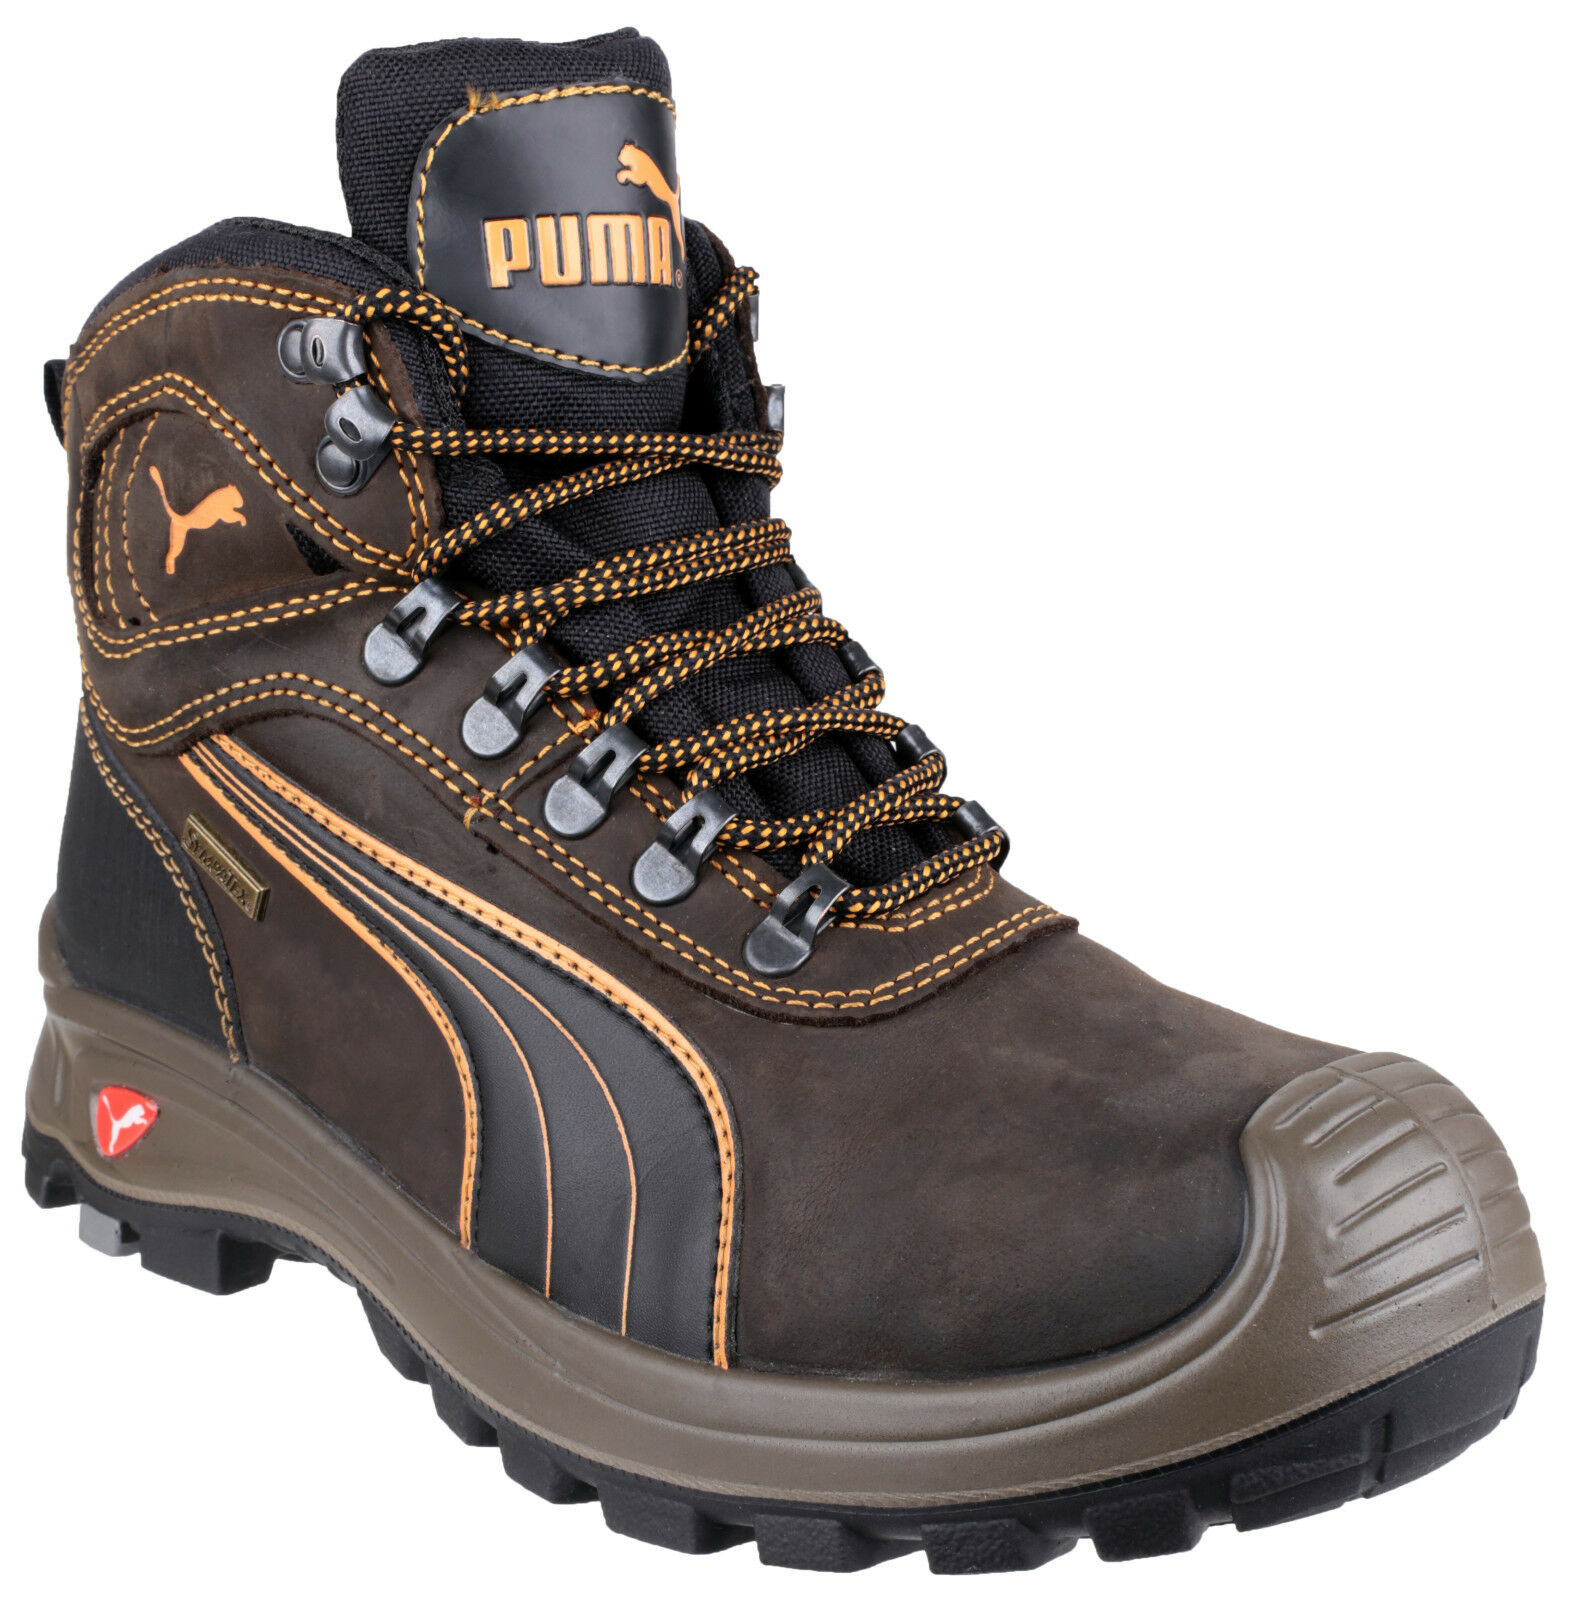 Puma Sierra Nevada Mid Safety Mens Composite Industrial Work Boots shoes UK6-13